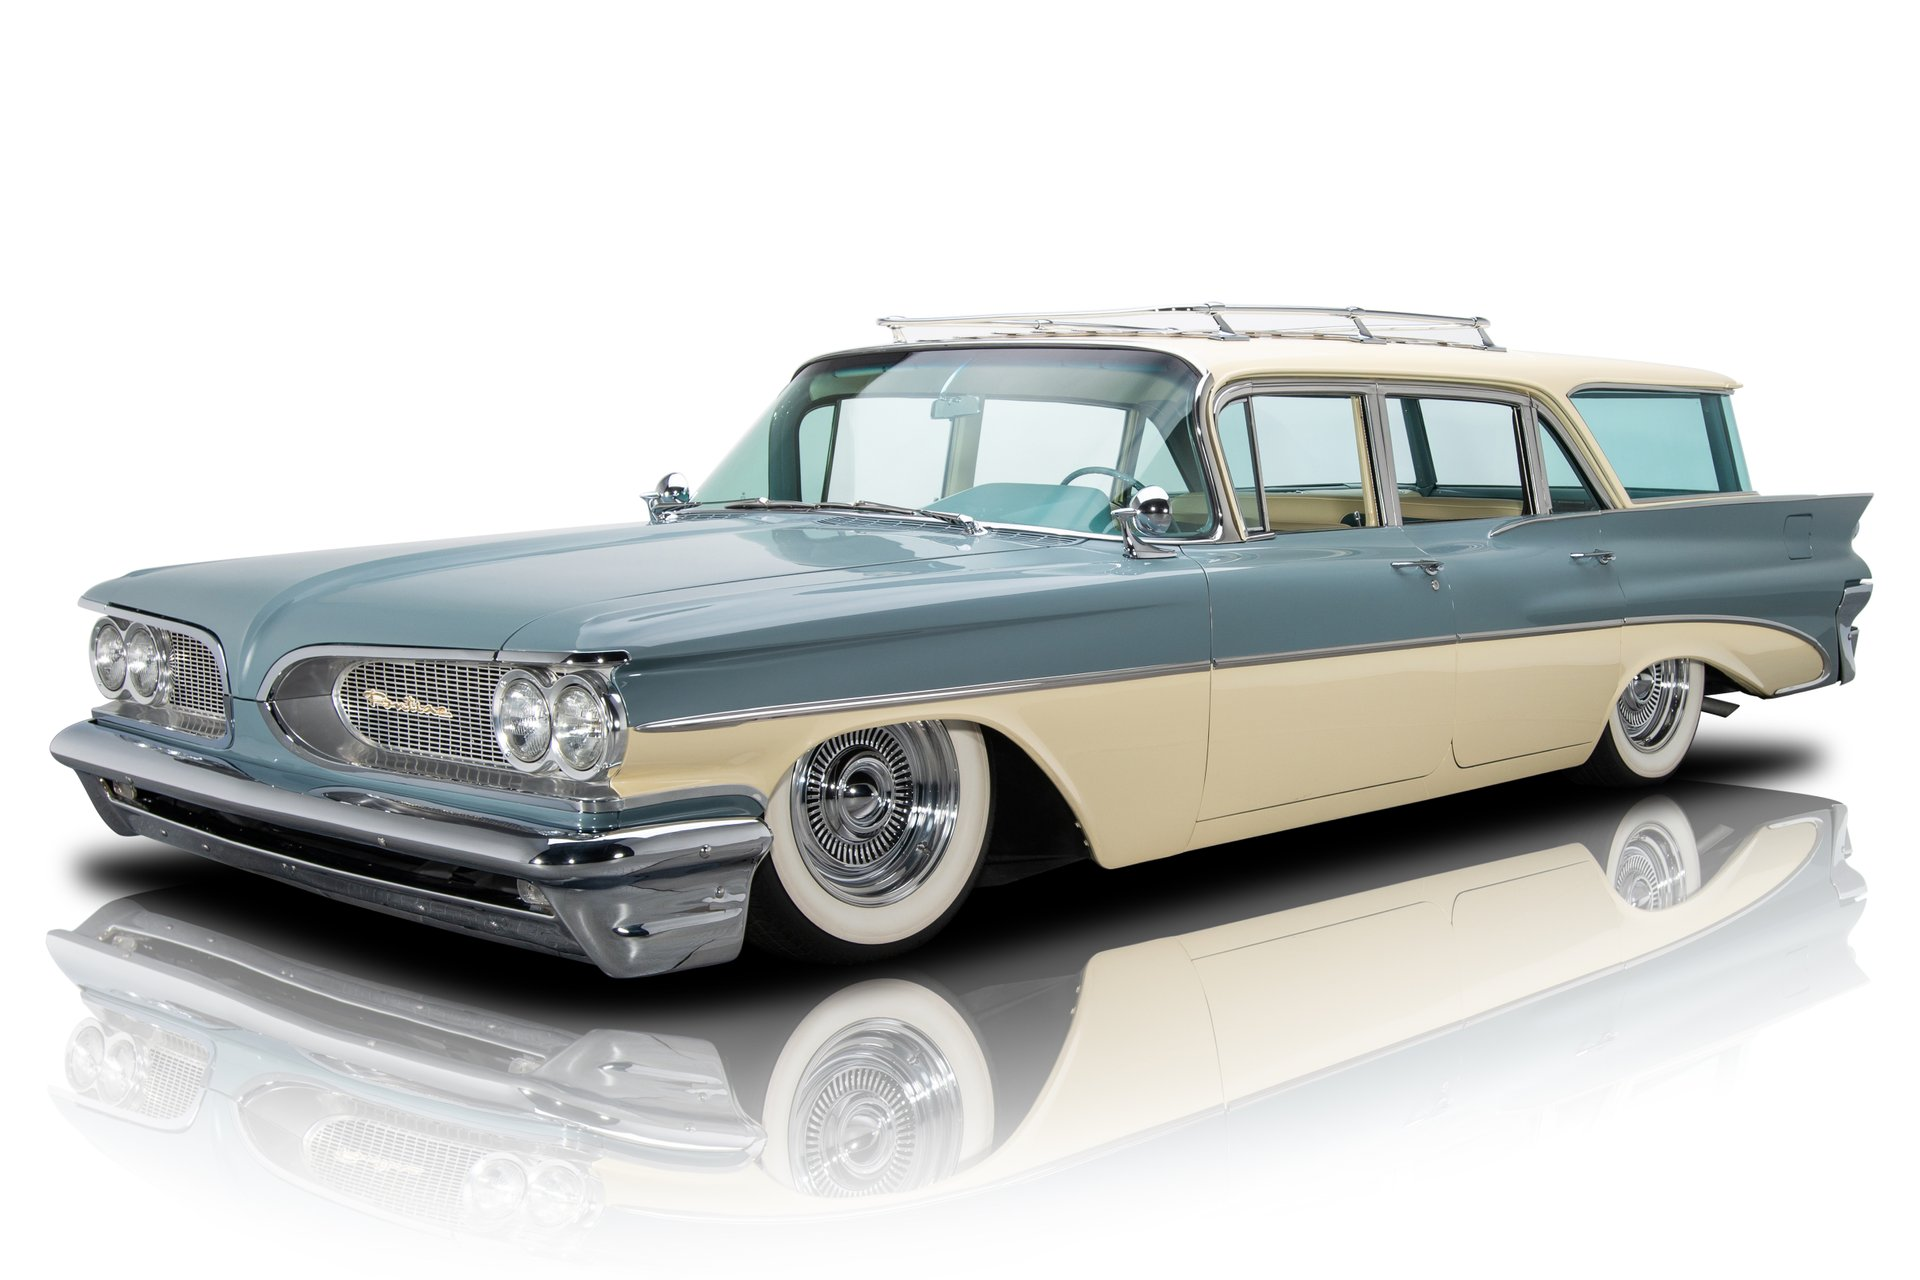 1959 pontiac catalina safari wagon